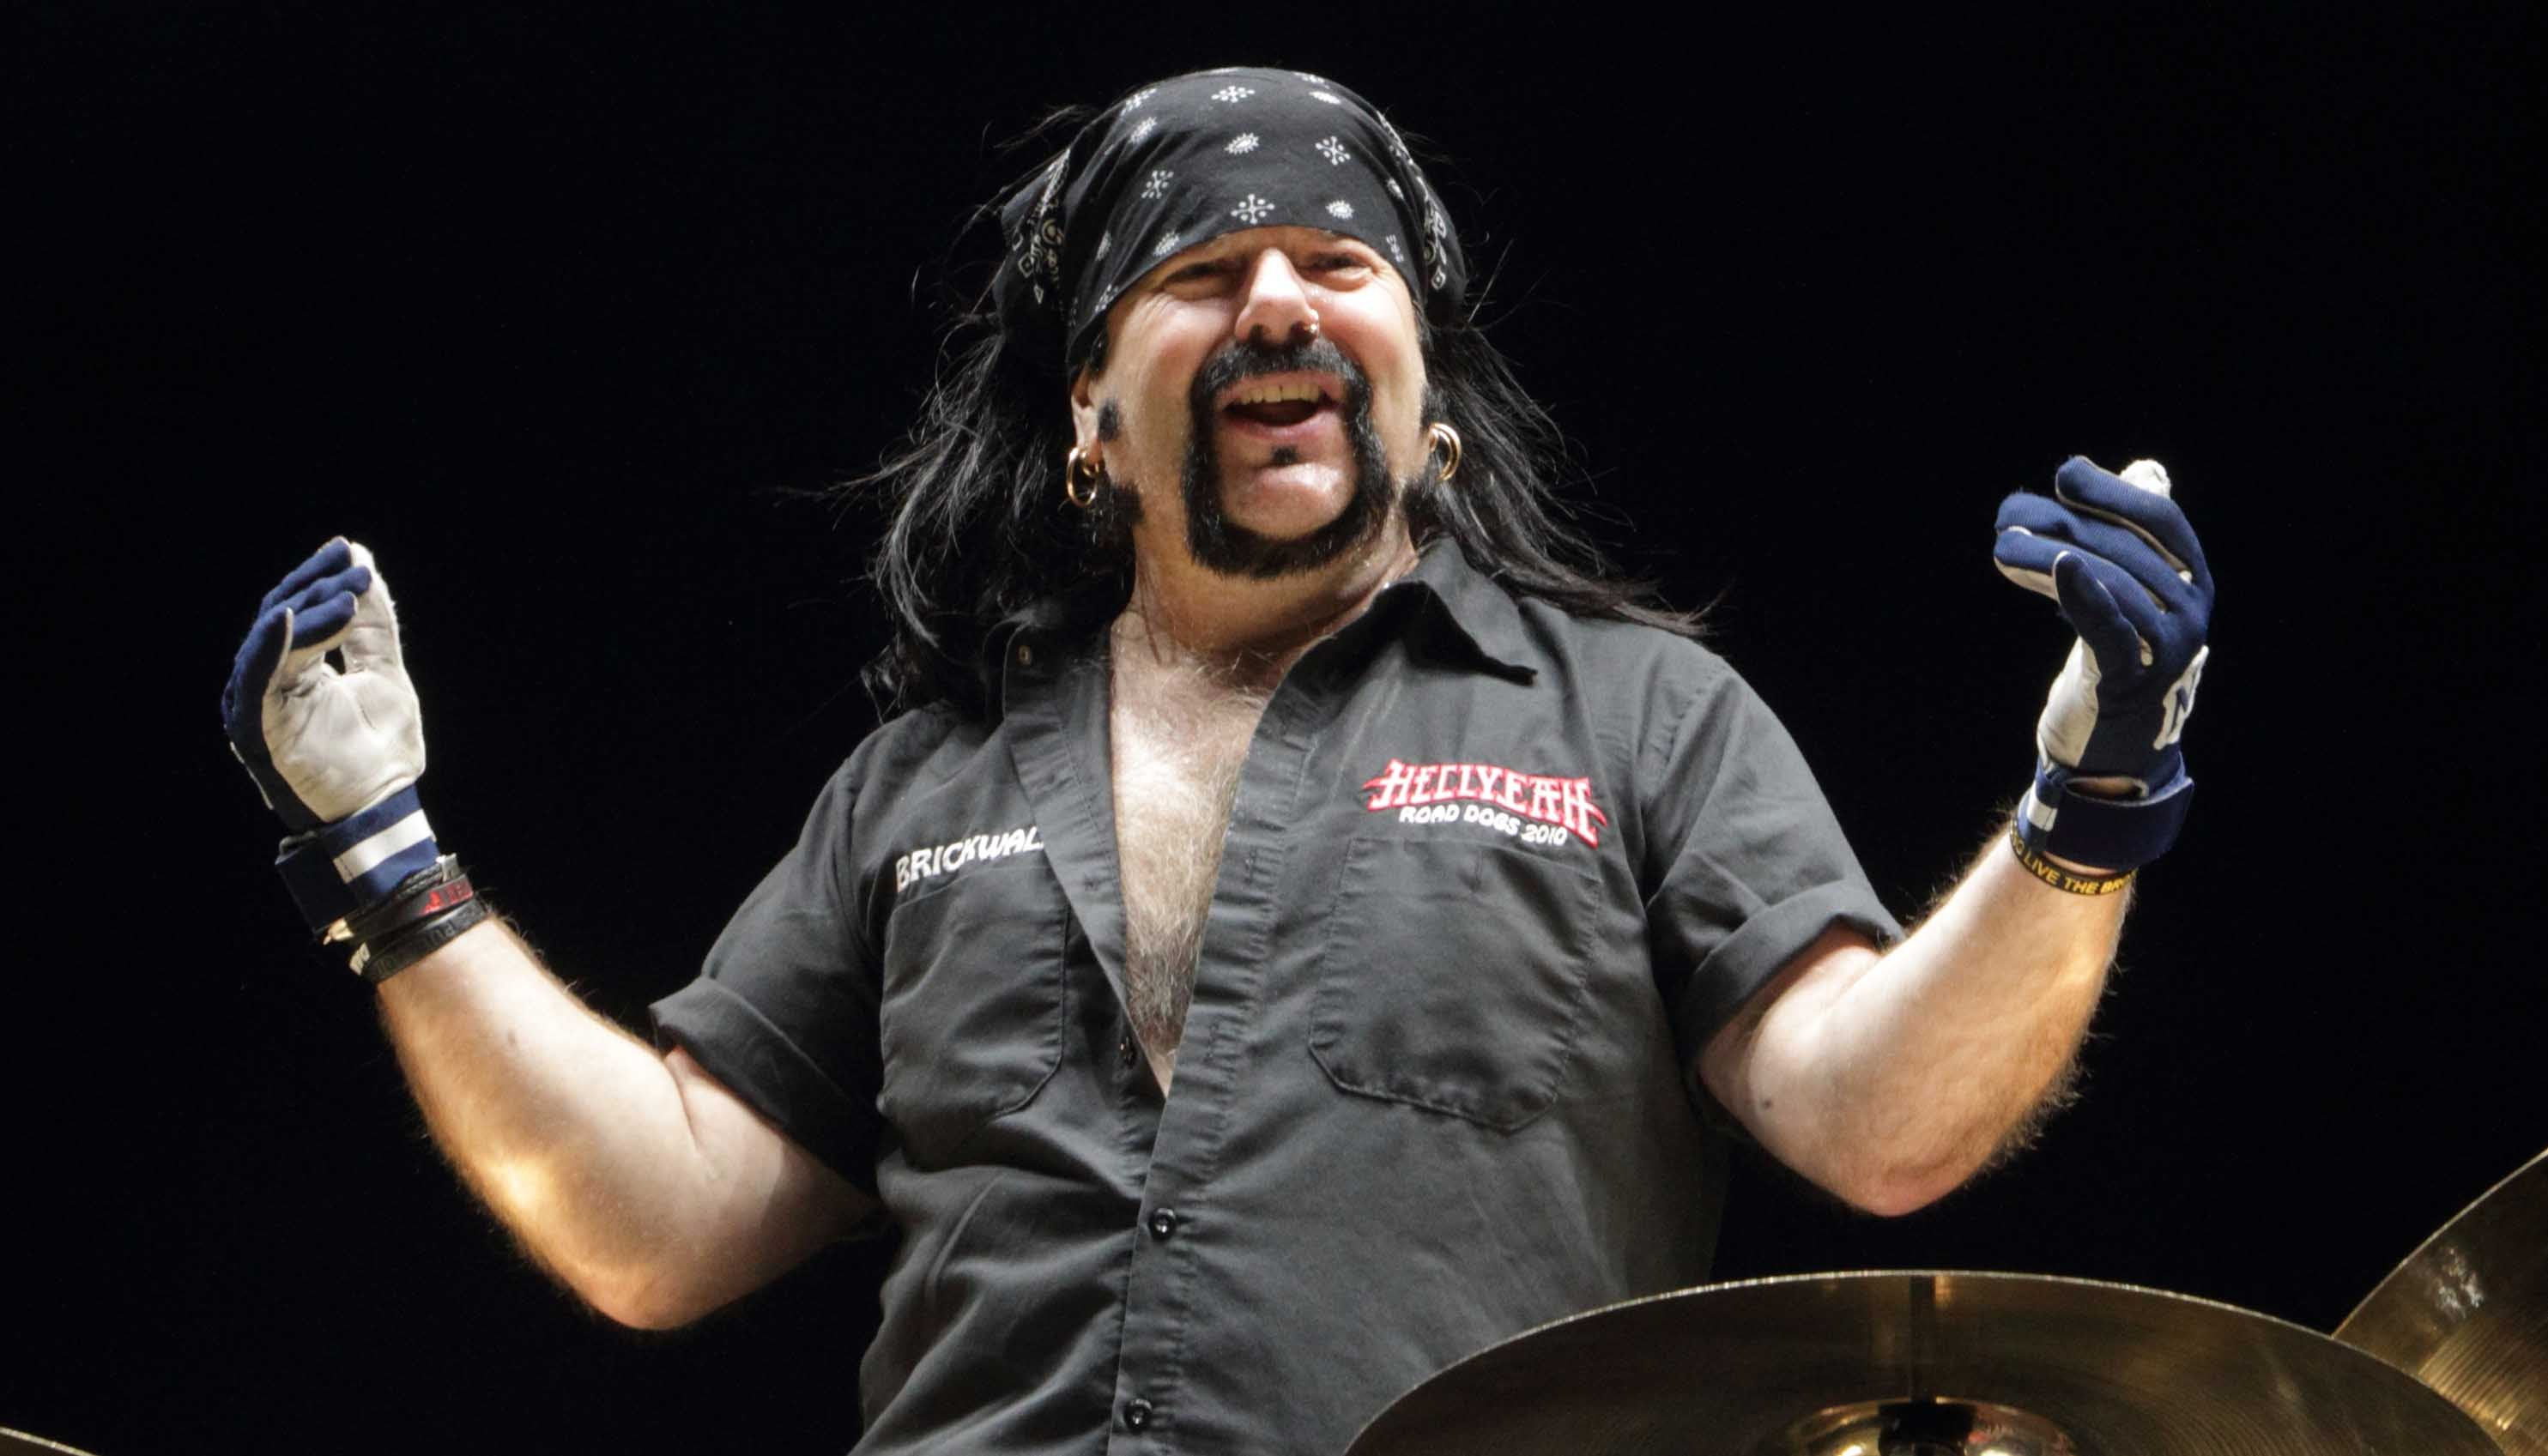 Vinnie Paul, co-founder and drummer of Pantera, dies at 54